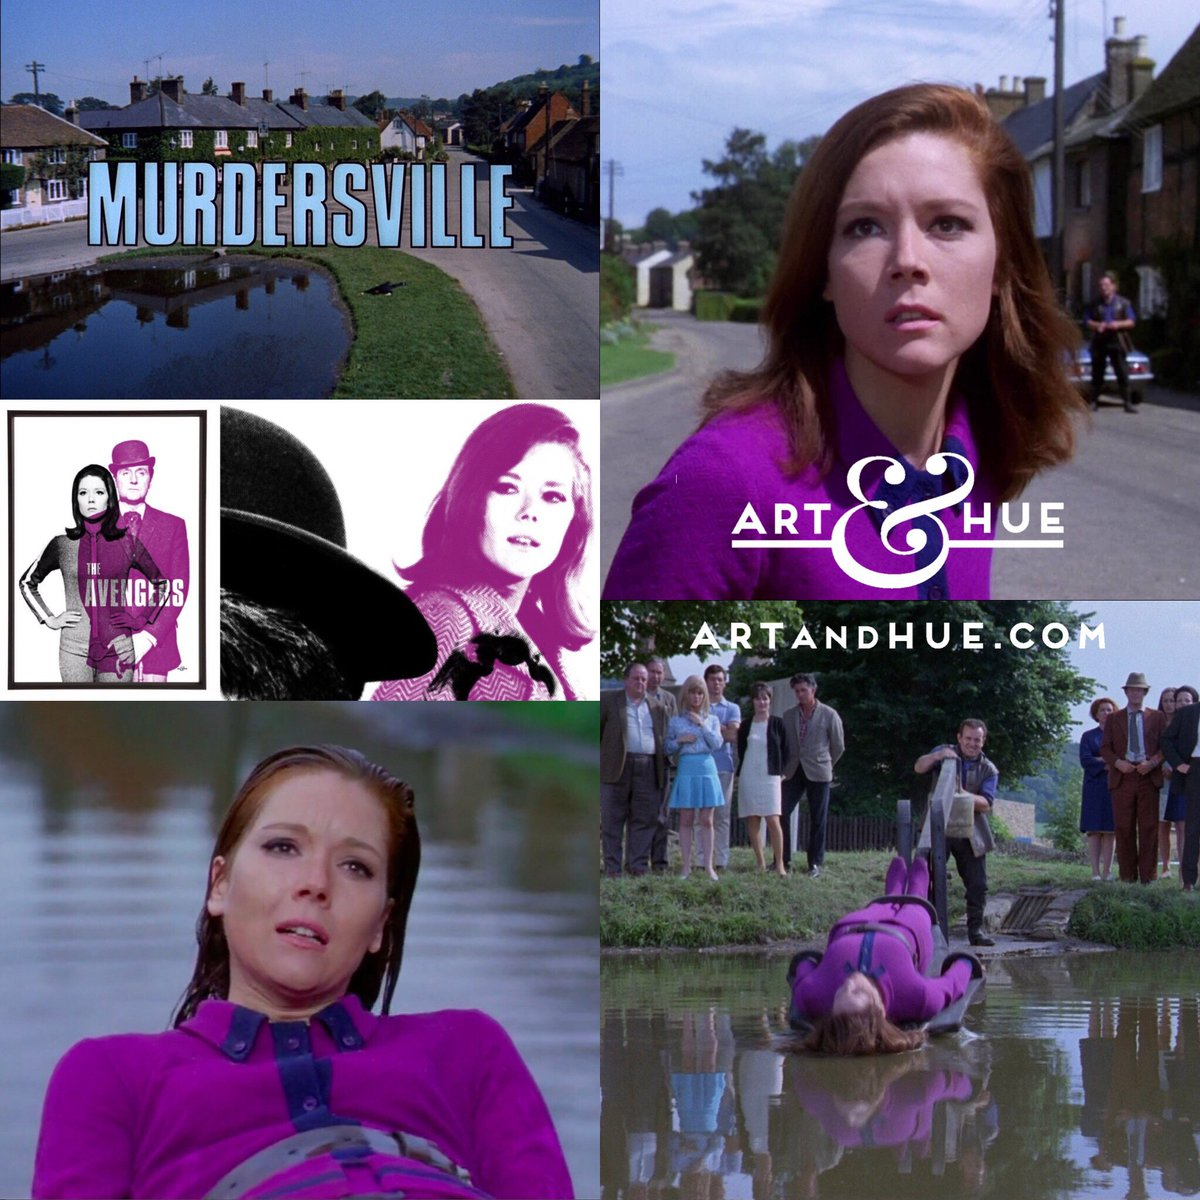 """On this day in 1968, The Avengers episode """"Murdersville"""" aired on American television for the first time.  http://artandhue.com/theavengers  #OnThisDay #OTD #dianarigg #mrspeel #patrickmacnee #johnsteed #EmmaPeel #TheAvengers #MadeAtElstree #Murdersville #ColinBlakely #Aldbury"""